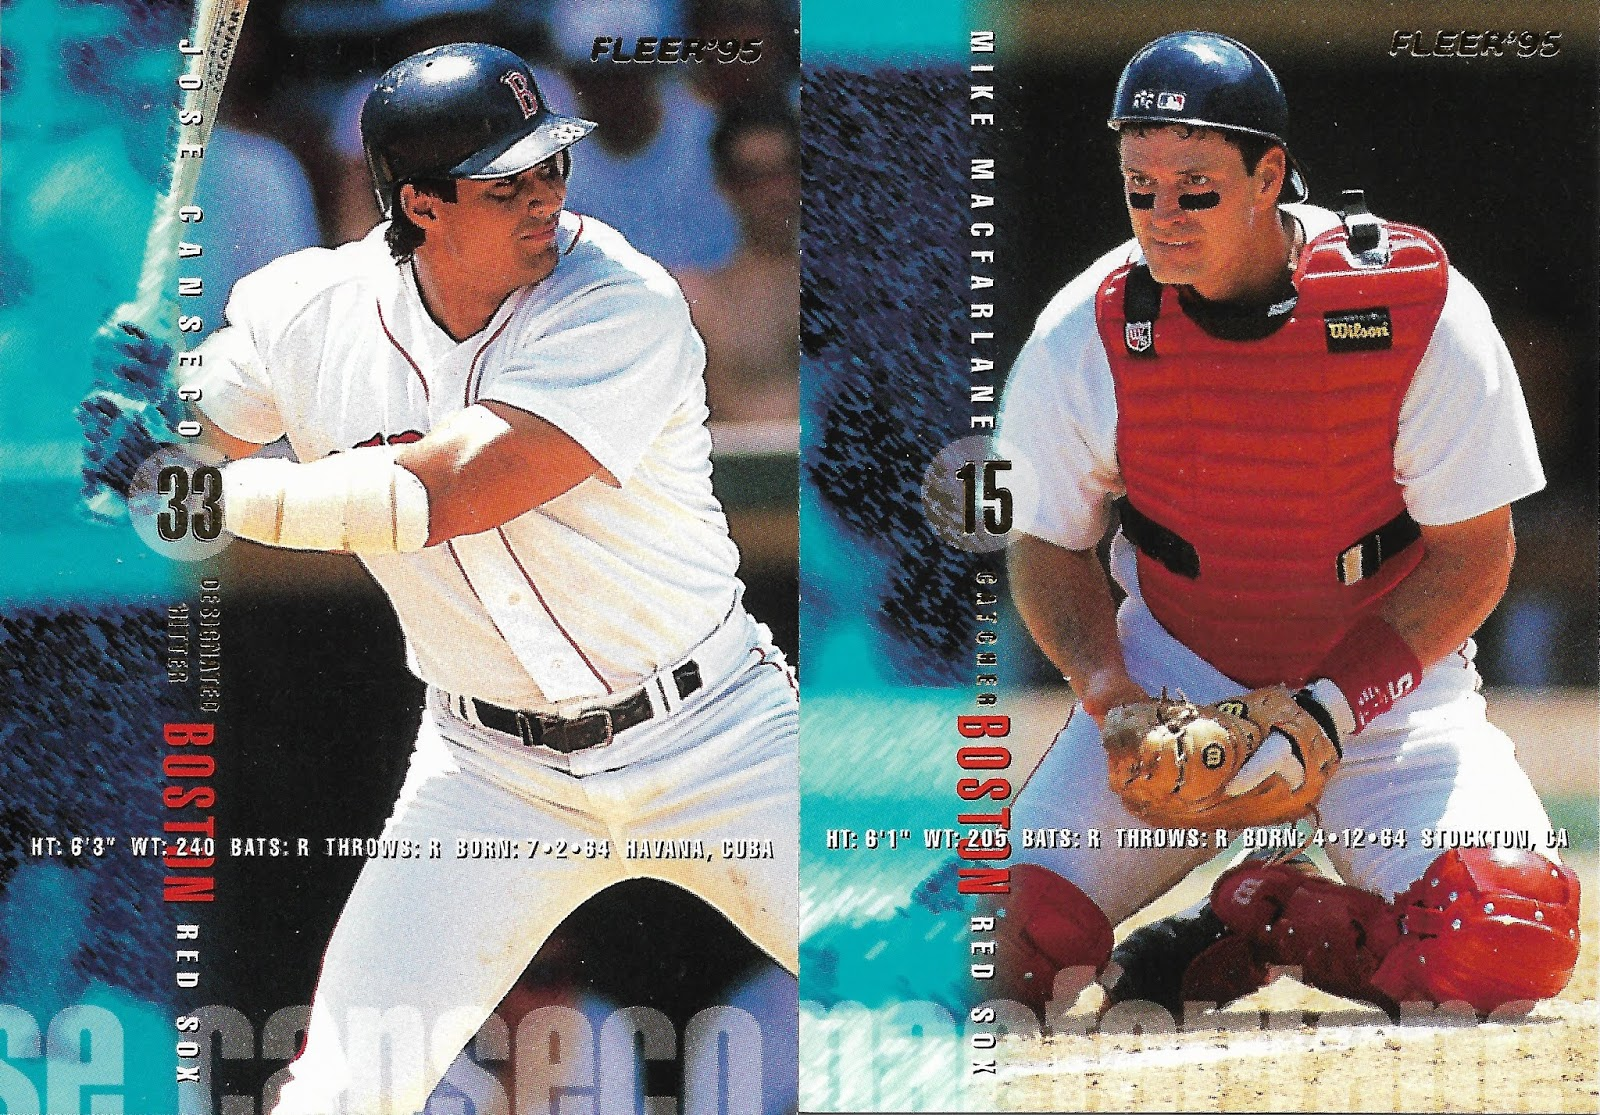 4153123236 All four Red Sox in the 1995 Fleer Update were there.